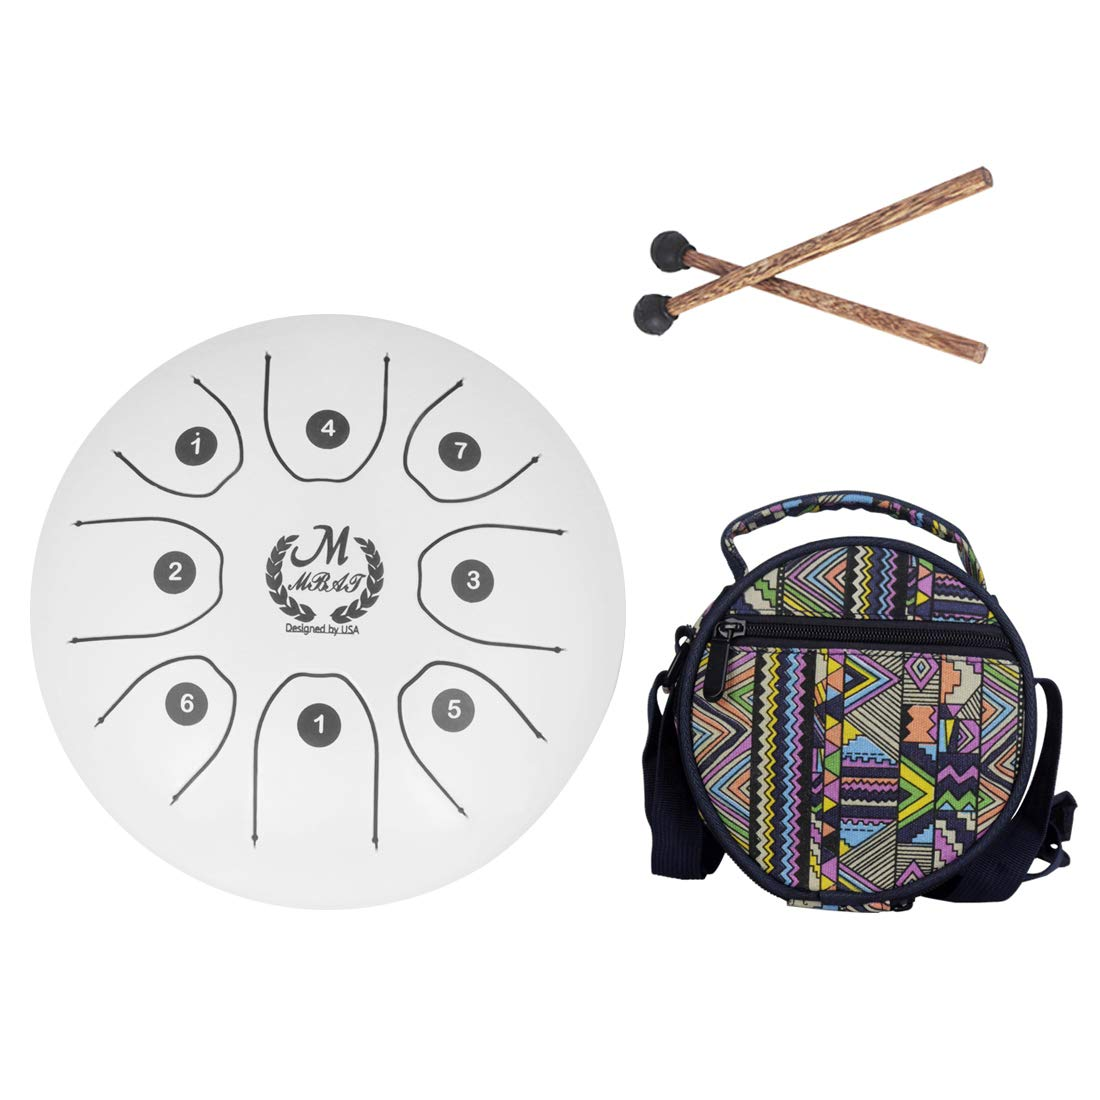 Huilier 5.5 Inch C Key Tongue Drum Mini 8-Tone Steel Portable Hand Pan Drum Percussion Instrument